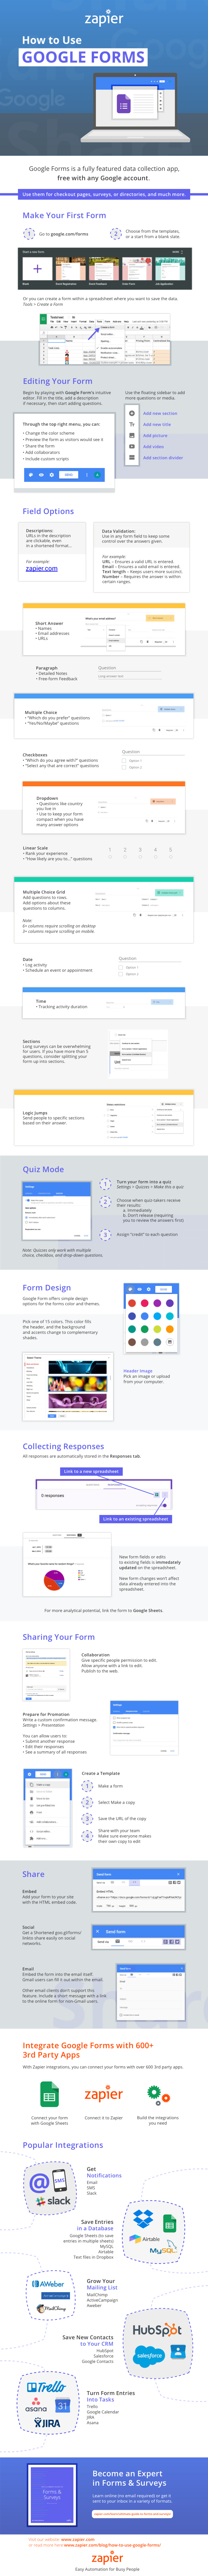 Learn How to Master Google Forms With This Handy Visual Guide